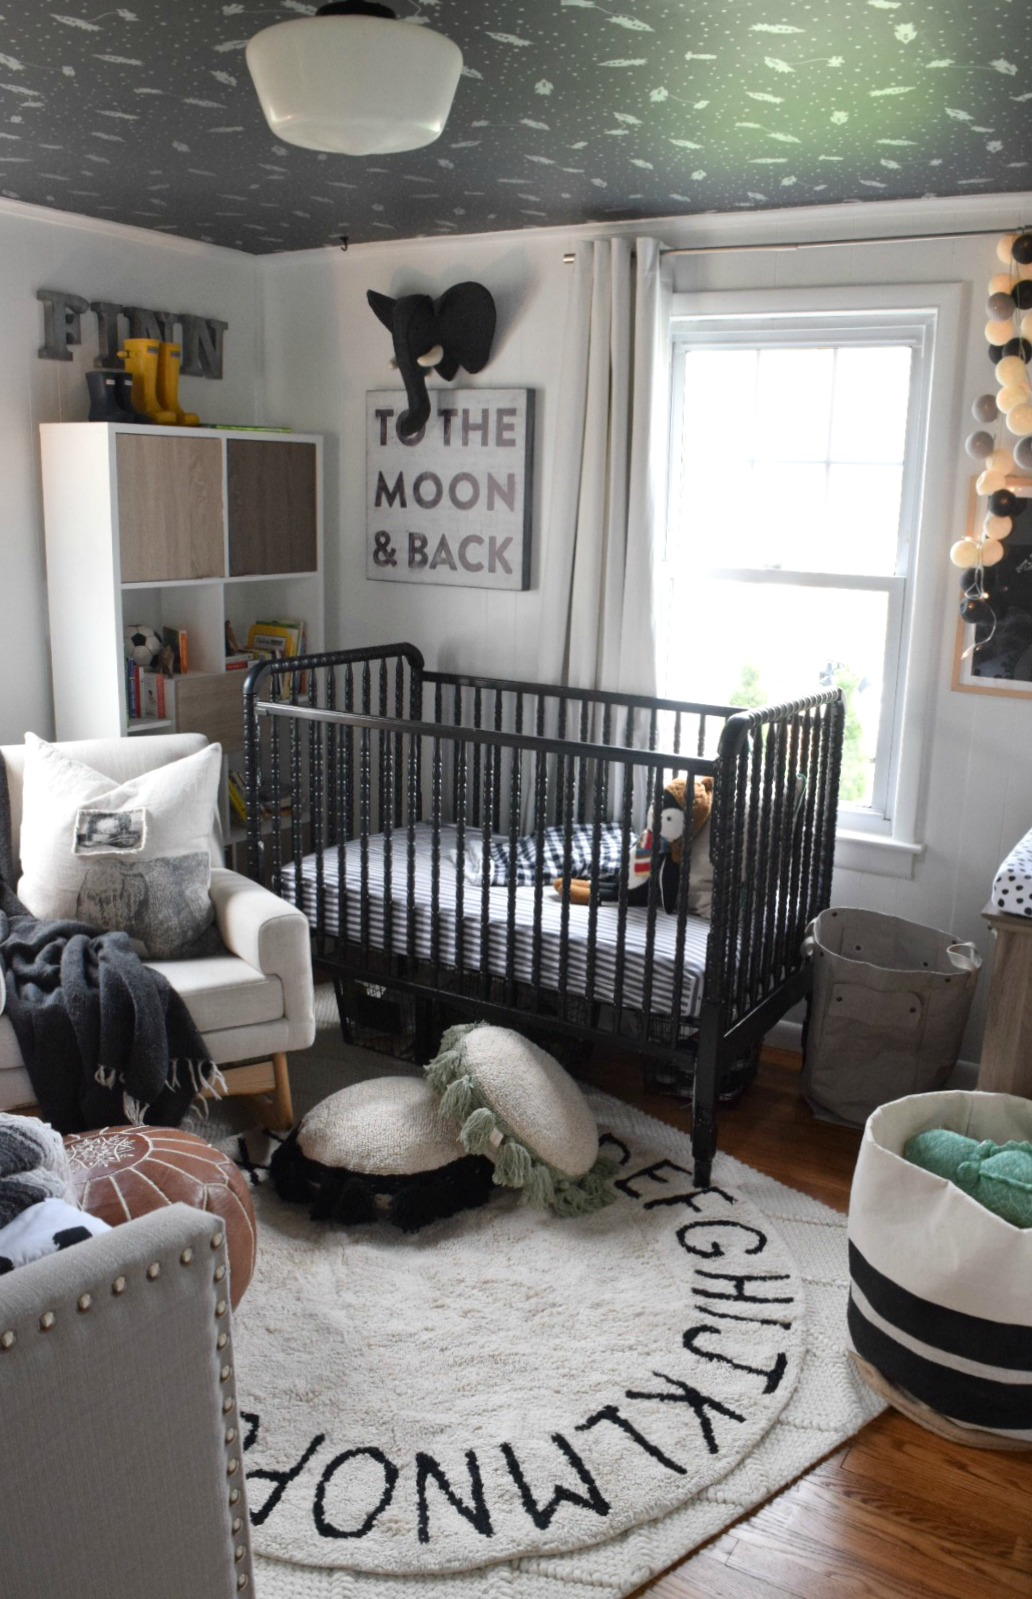 Home Decor Favorites- Washable Rug in Boys Nursery